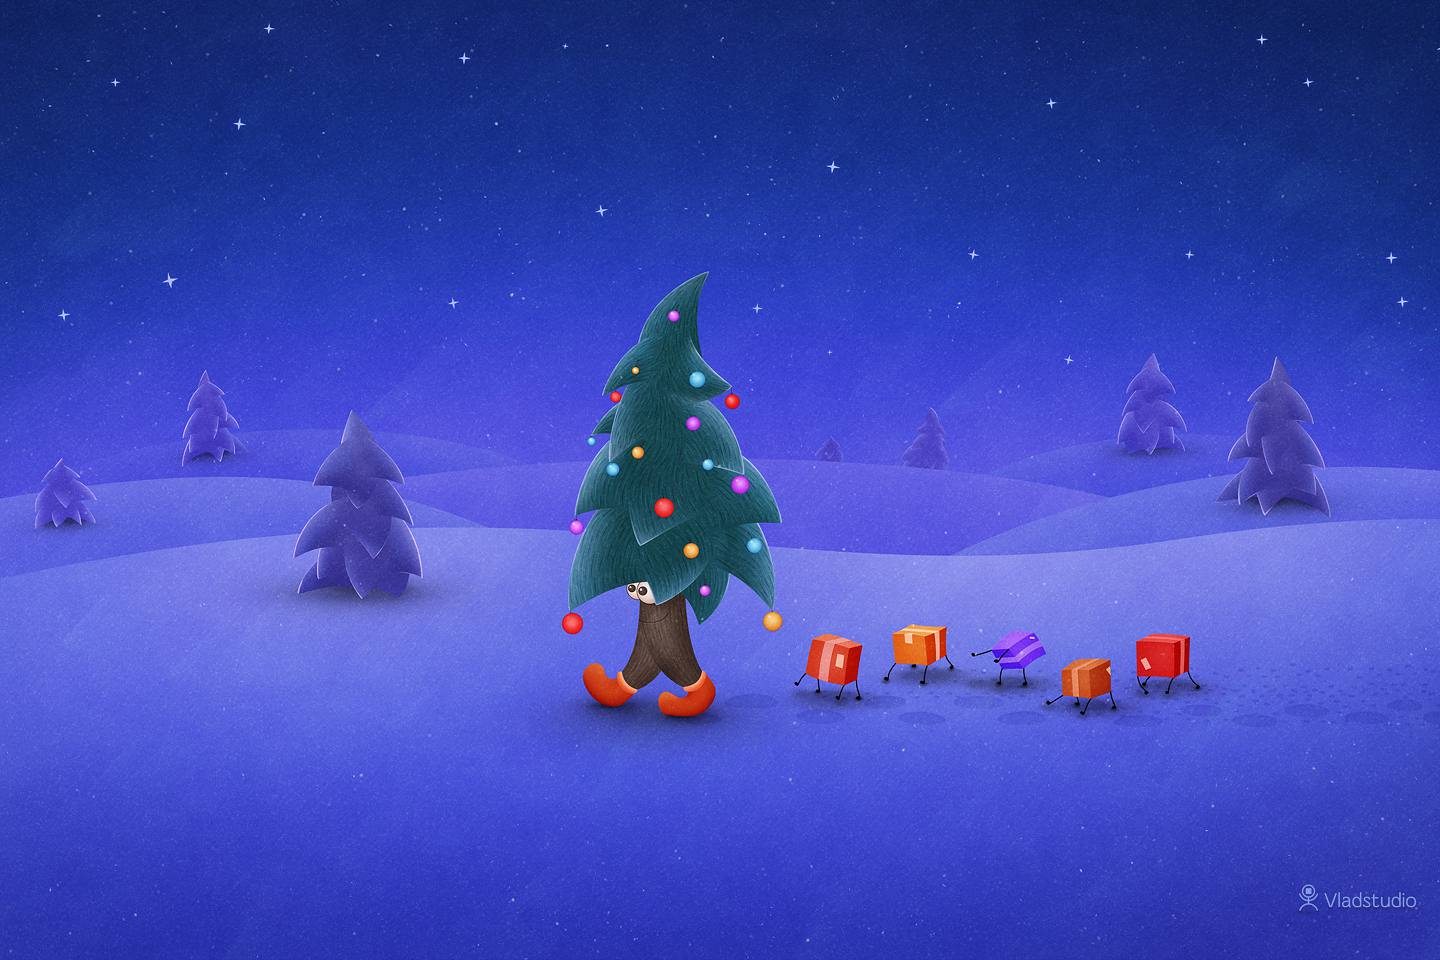 Christmas Desktop Wallpaper for Mac Windows and Linux 1440x960